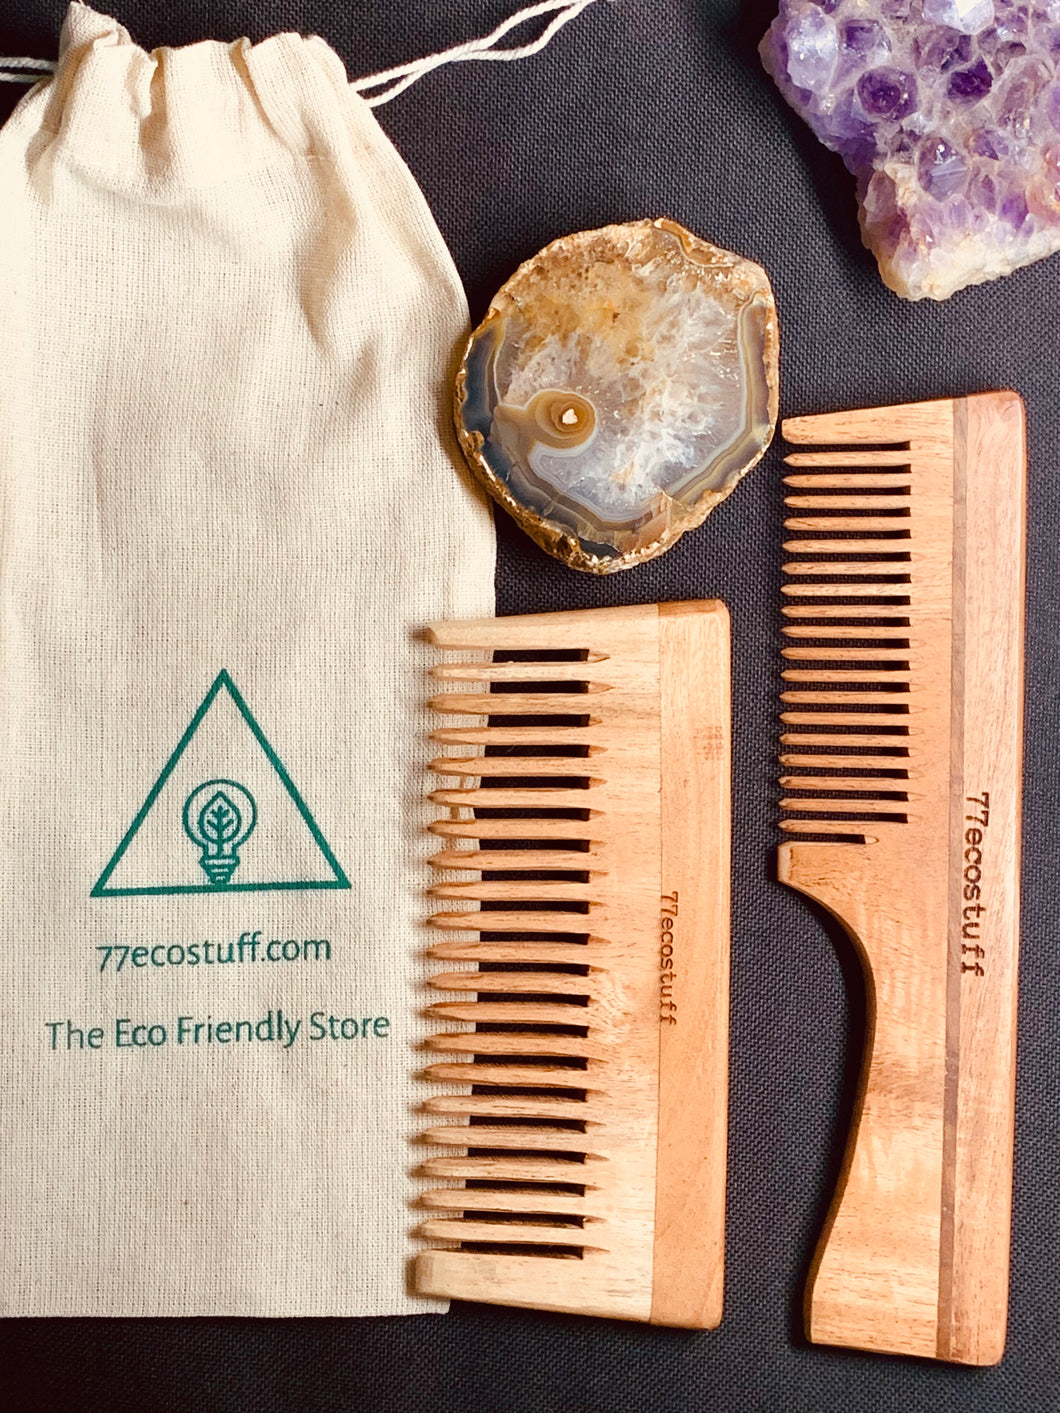 2 Eco-Friendly Neem Wood Combs